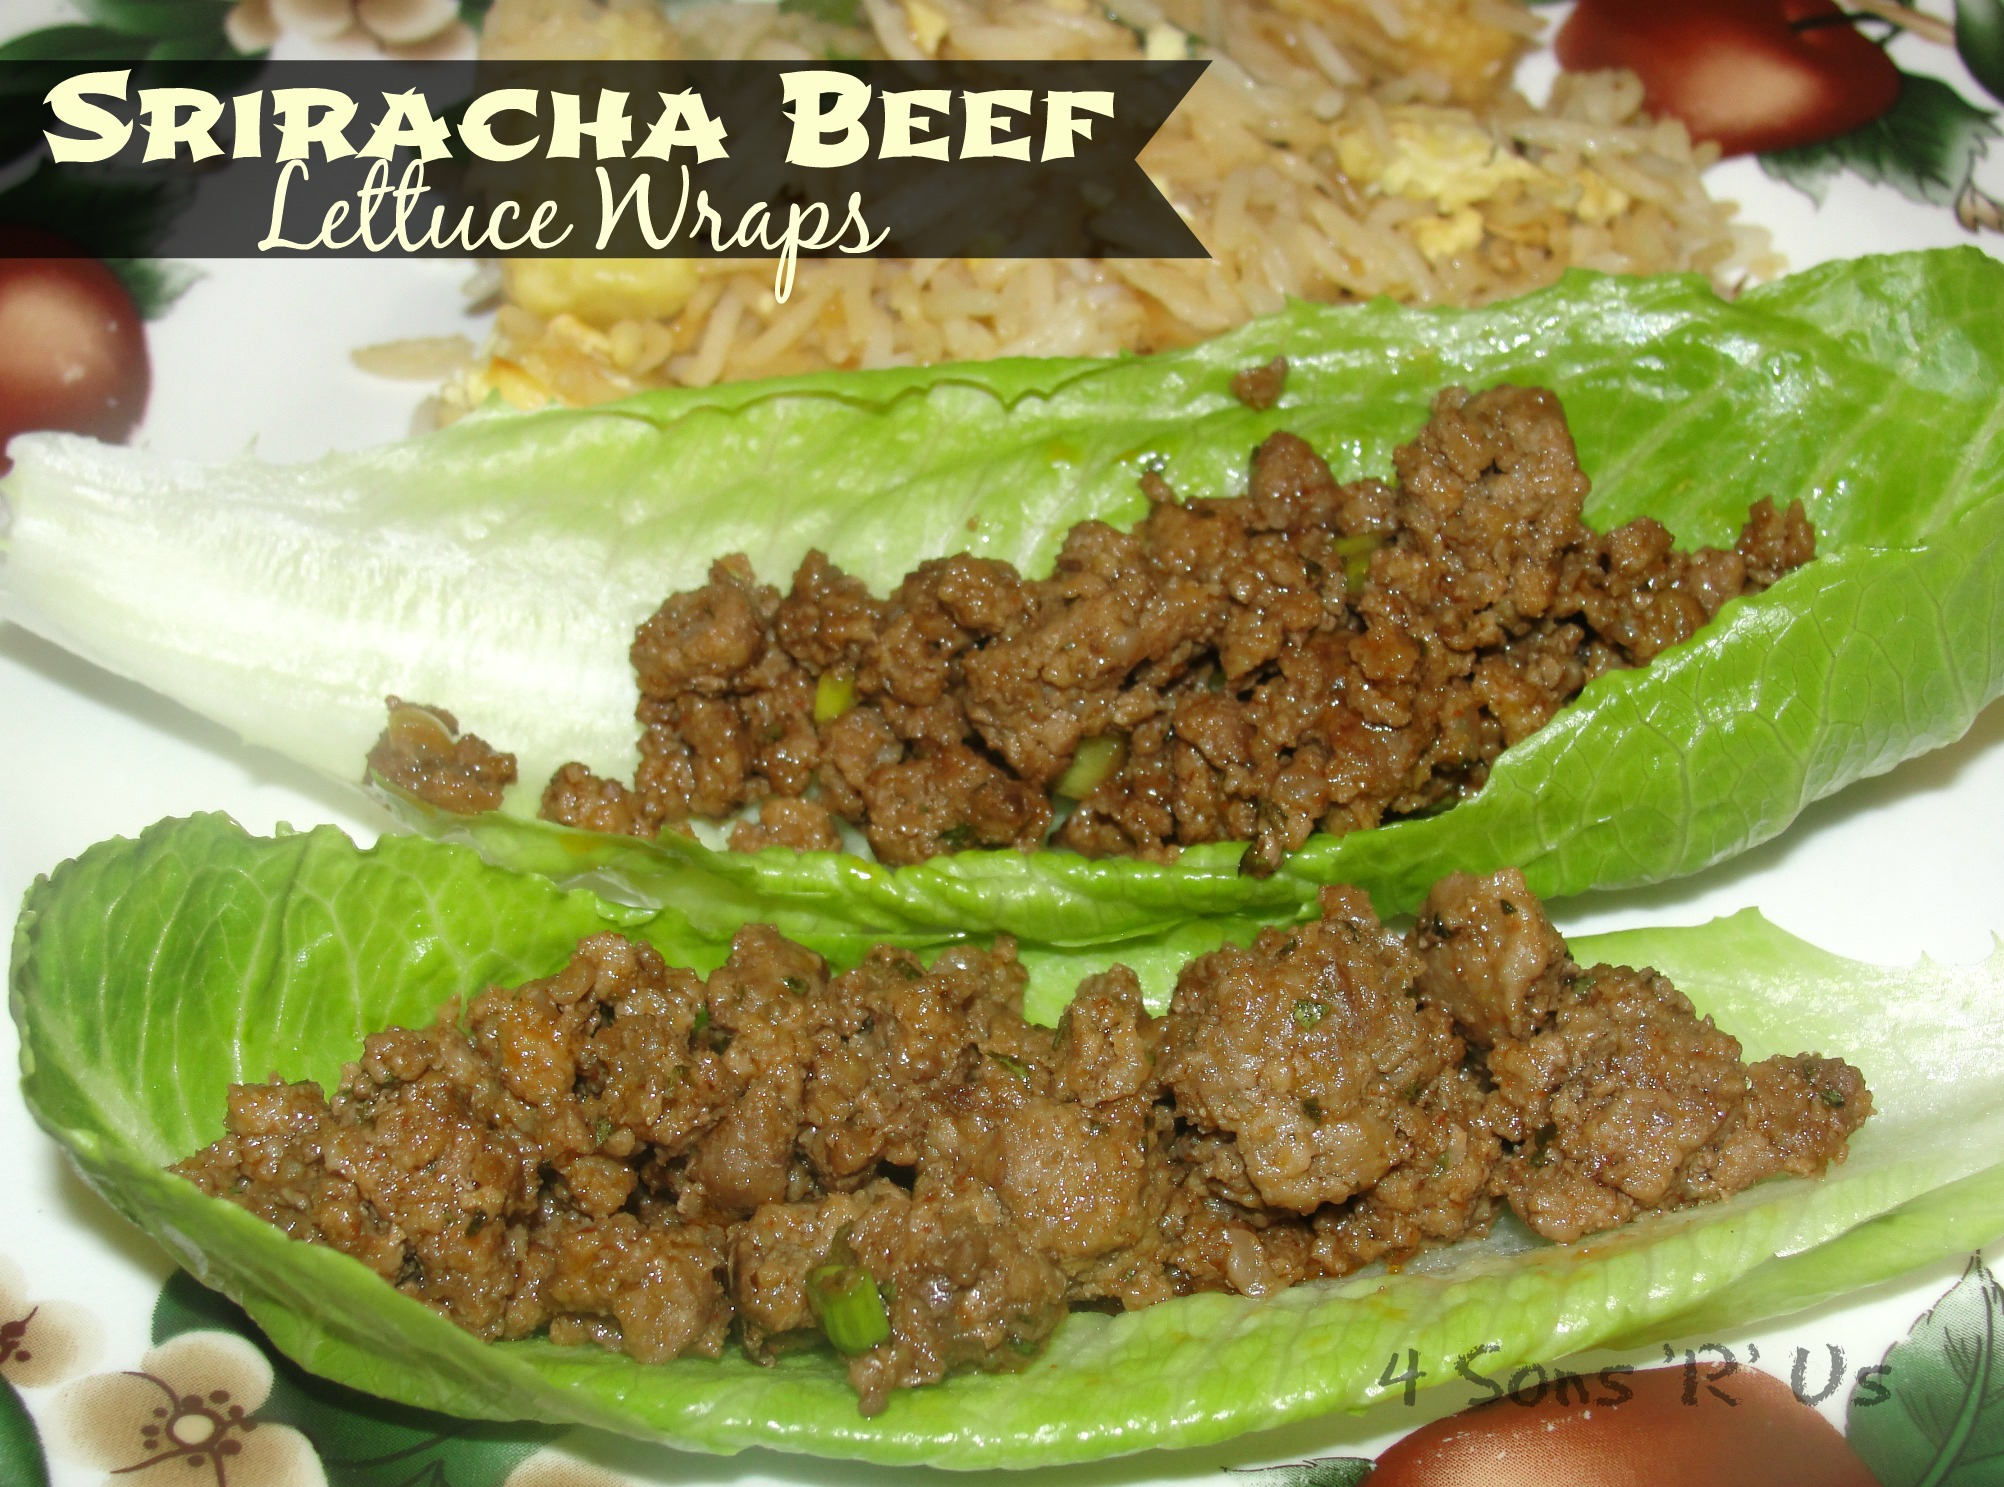 Sons 'R' Us: Sriracha Beef Lettuce Wraps